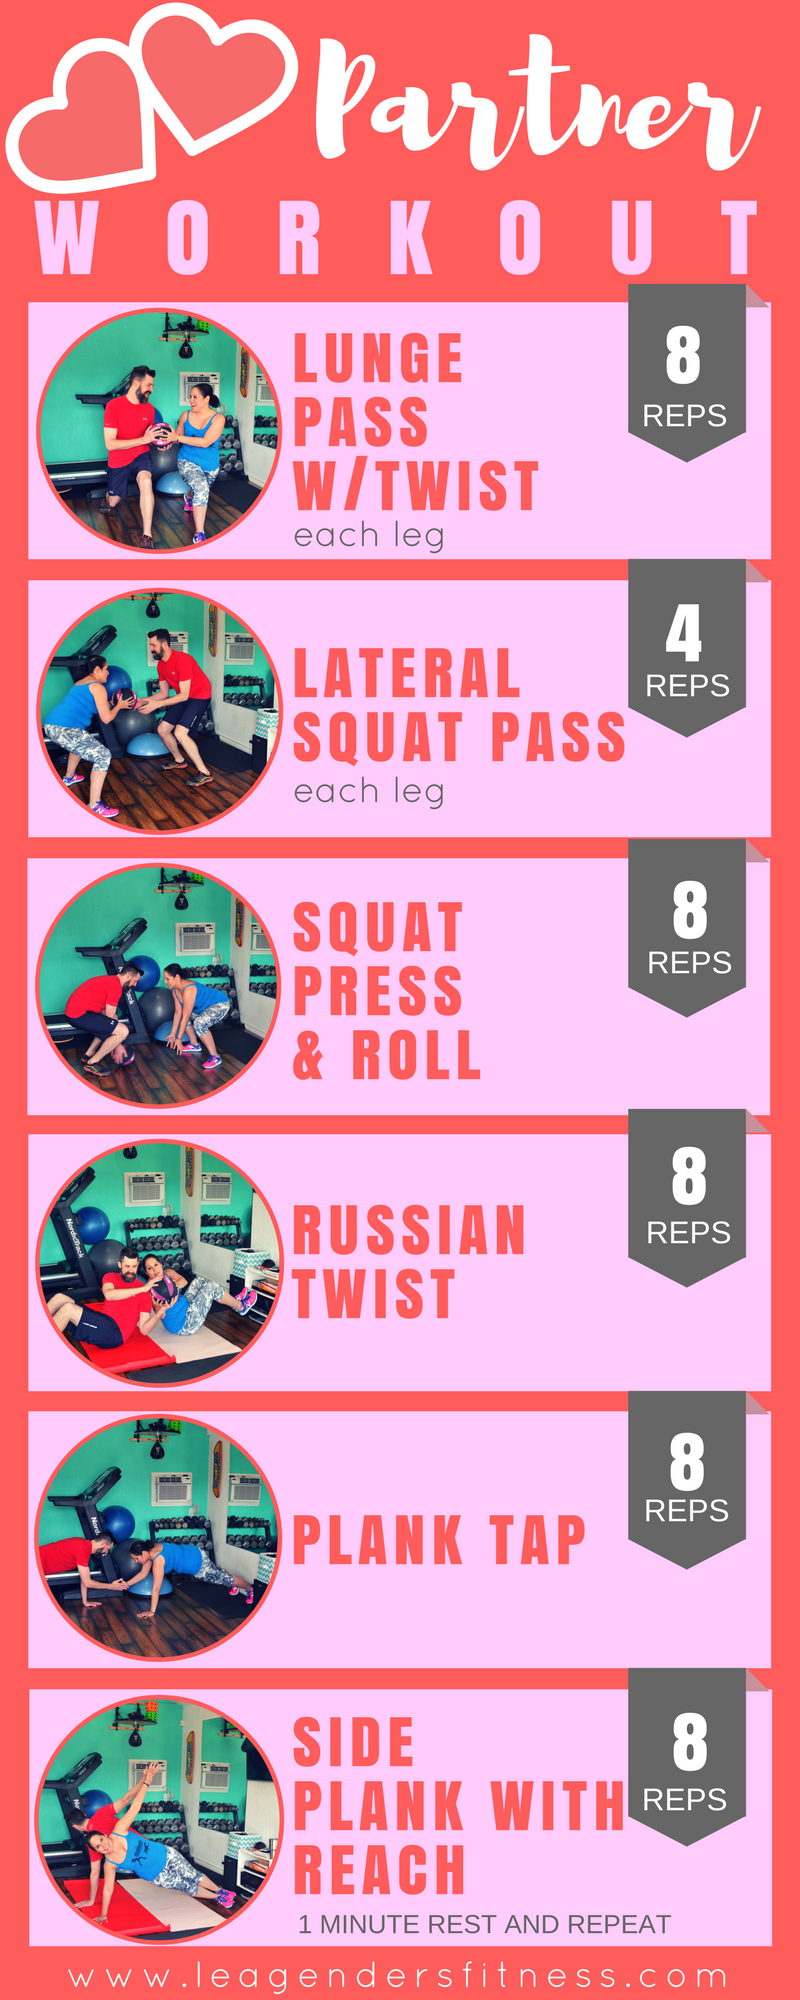 Partner Workout. Save to Pinterest for Later!